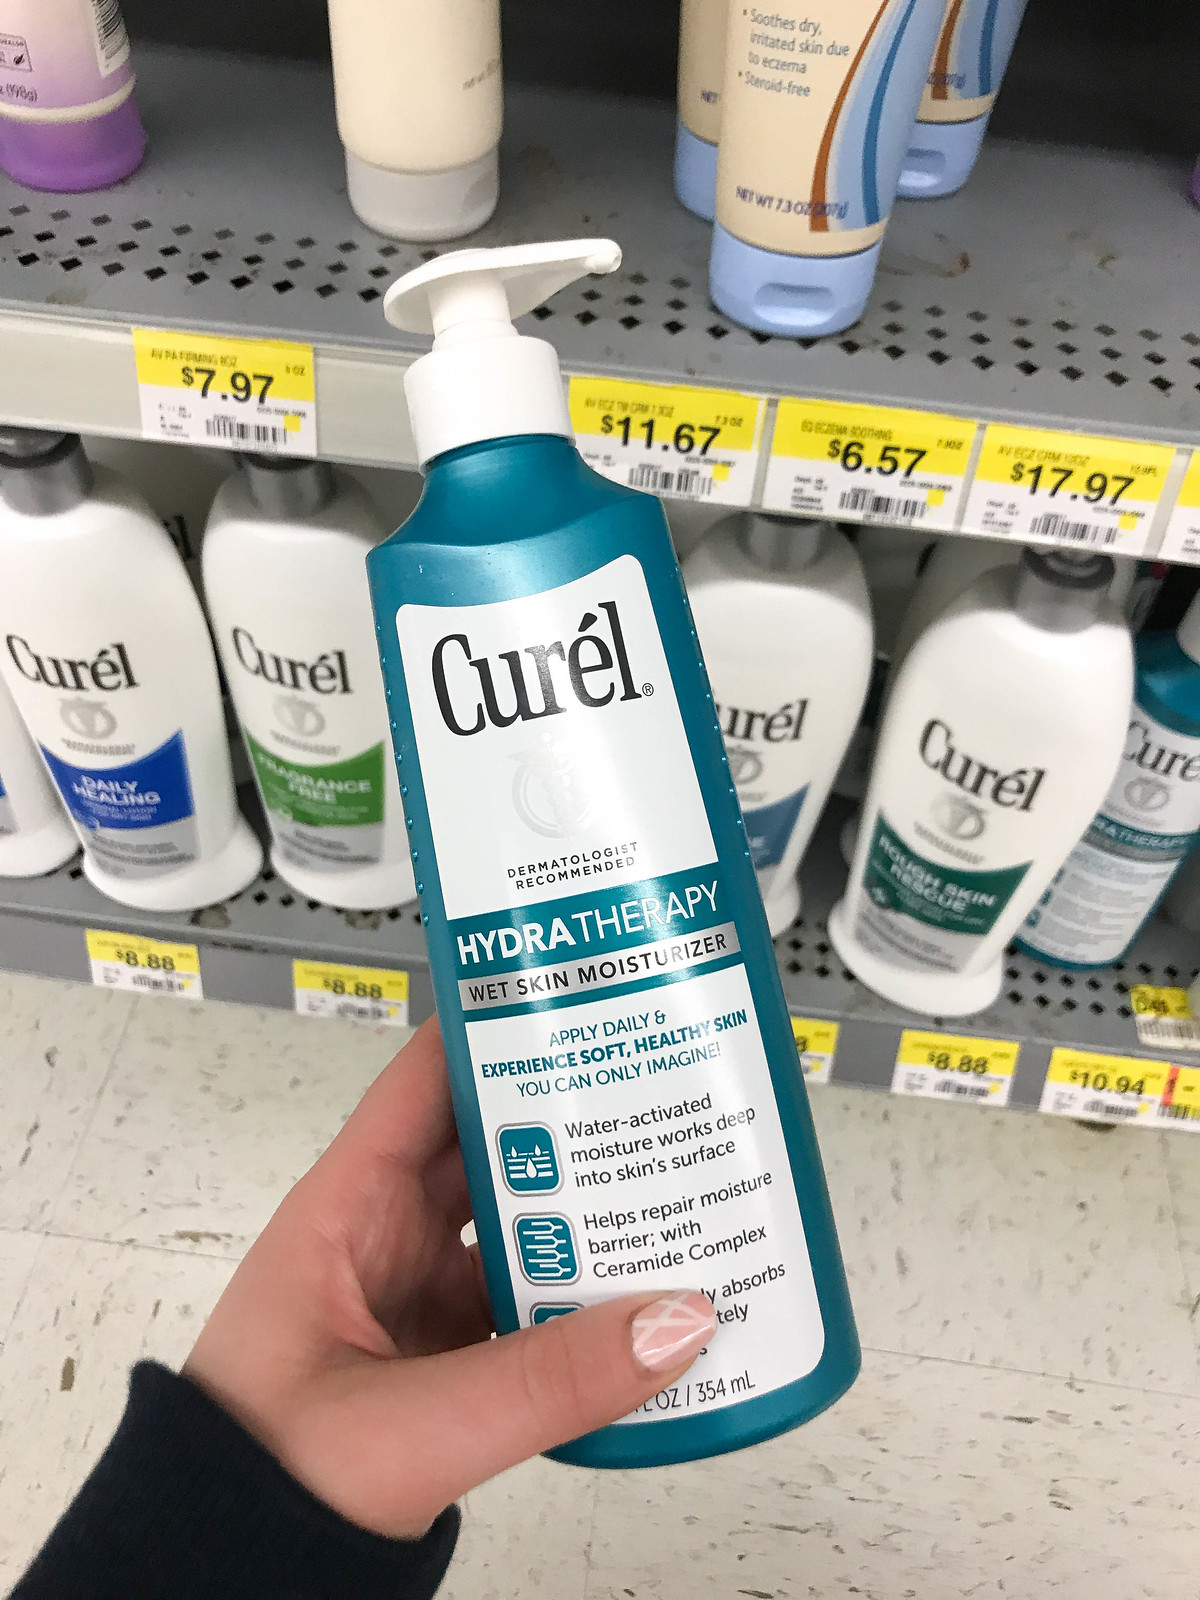 4 Reasons Why Wet Skin Moisturizer is the Best Curel Hydra Therapy Wet Skin Moisturizer at Walmart